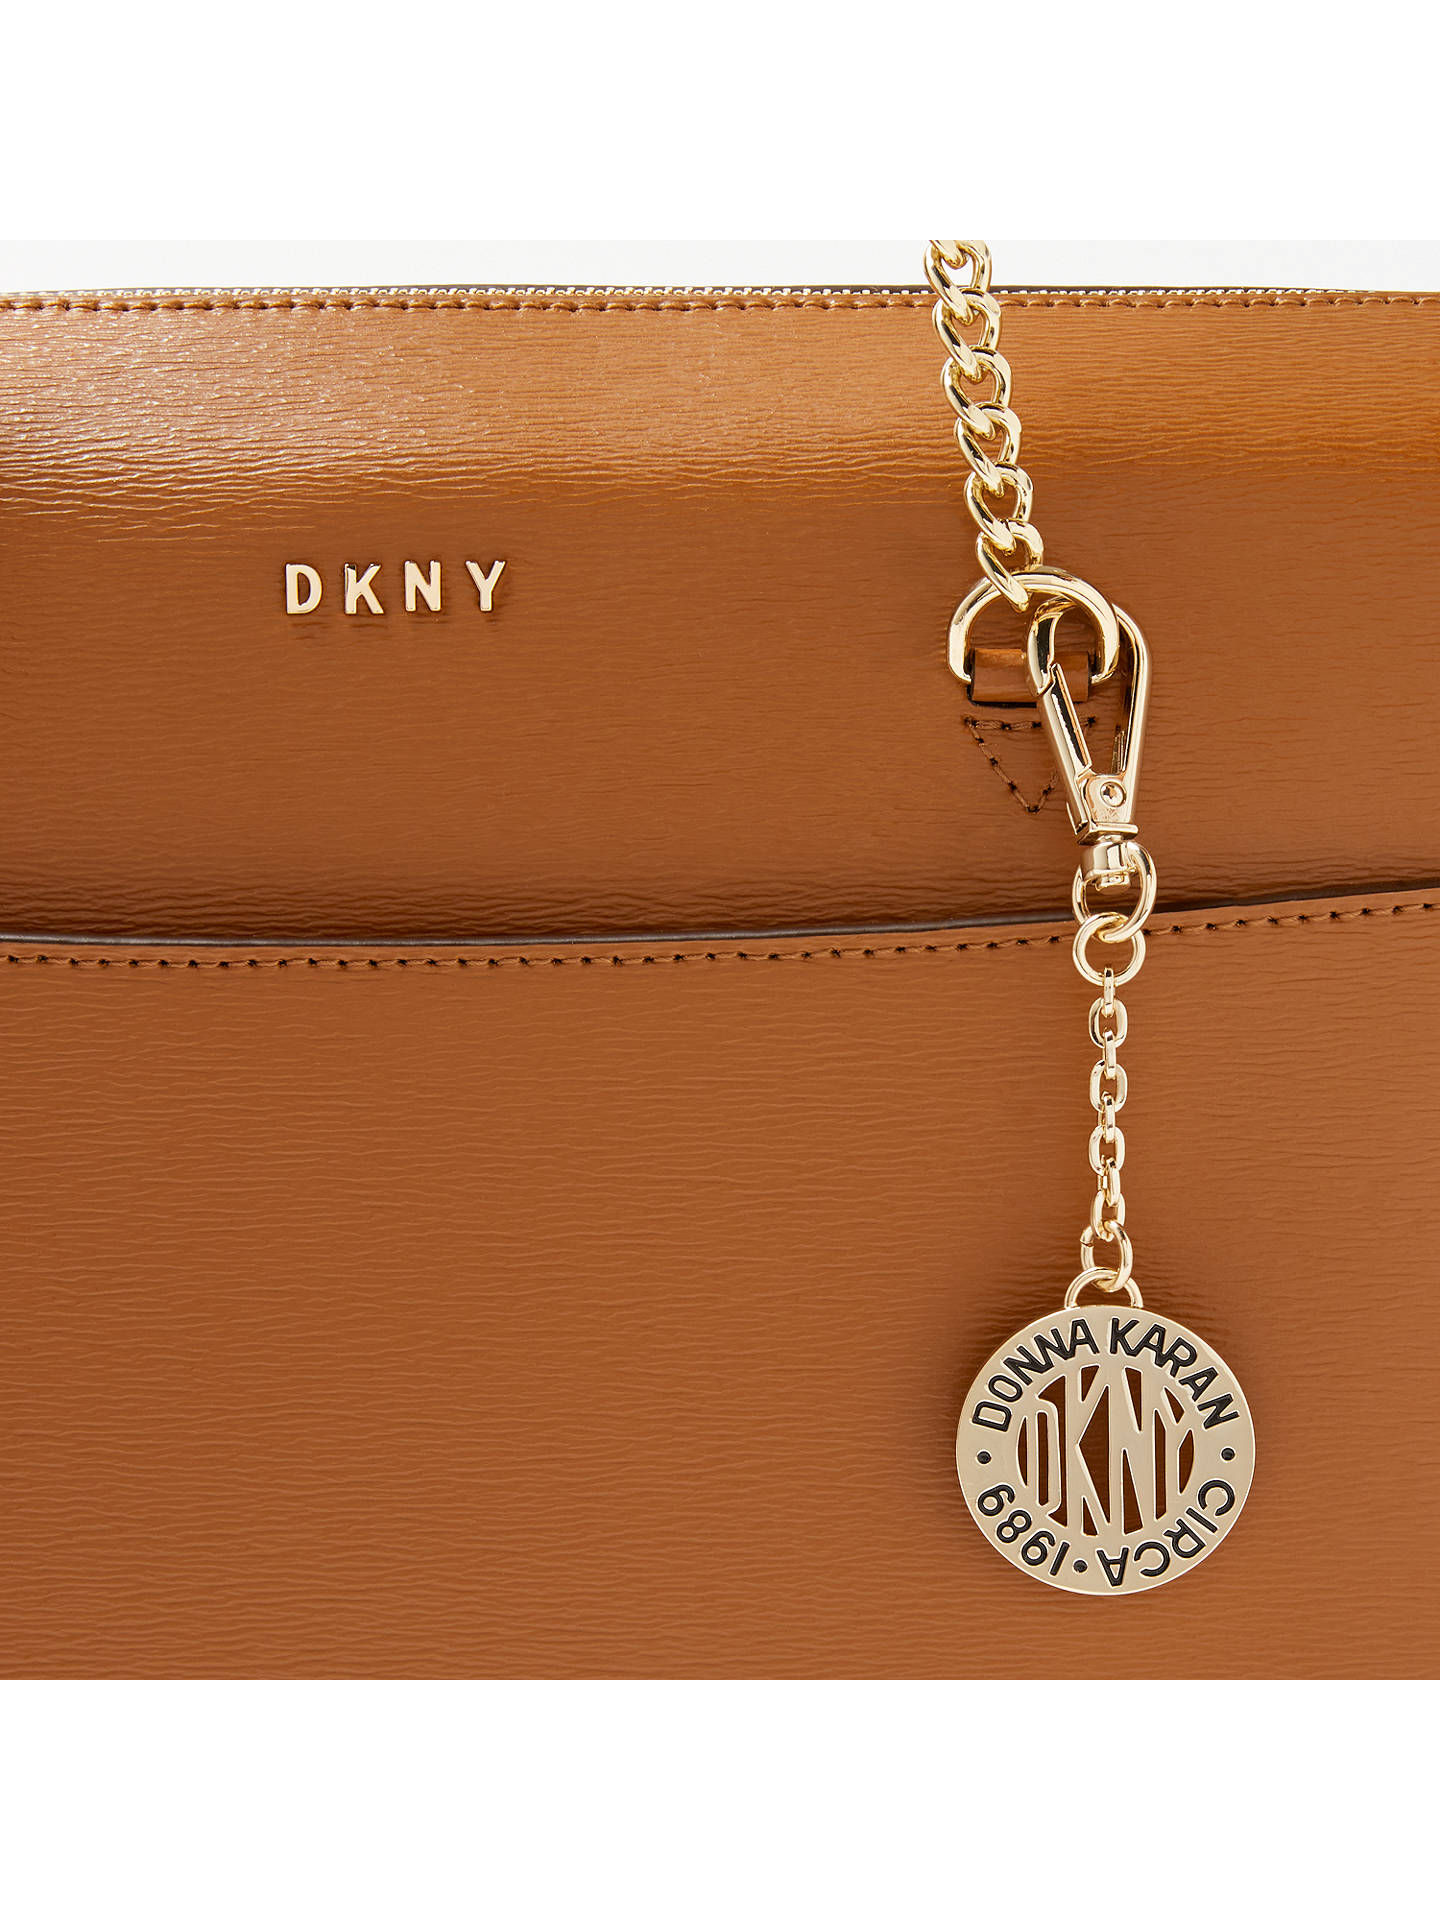 DKNY Sutton Textured Leather Tote Bag at John Lewis & Partners